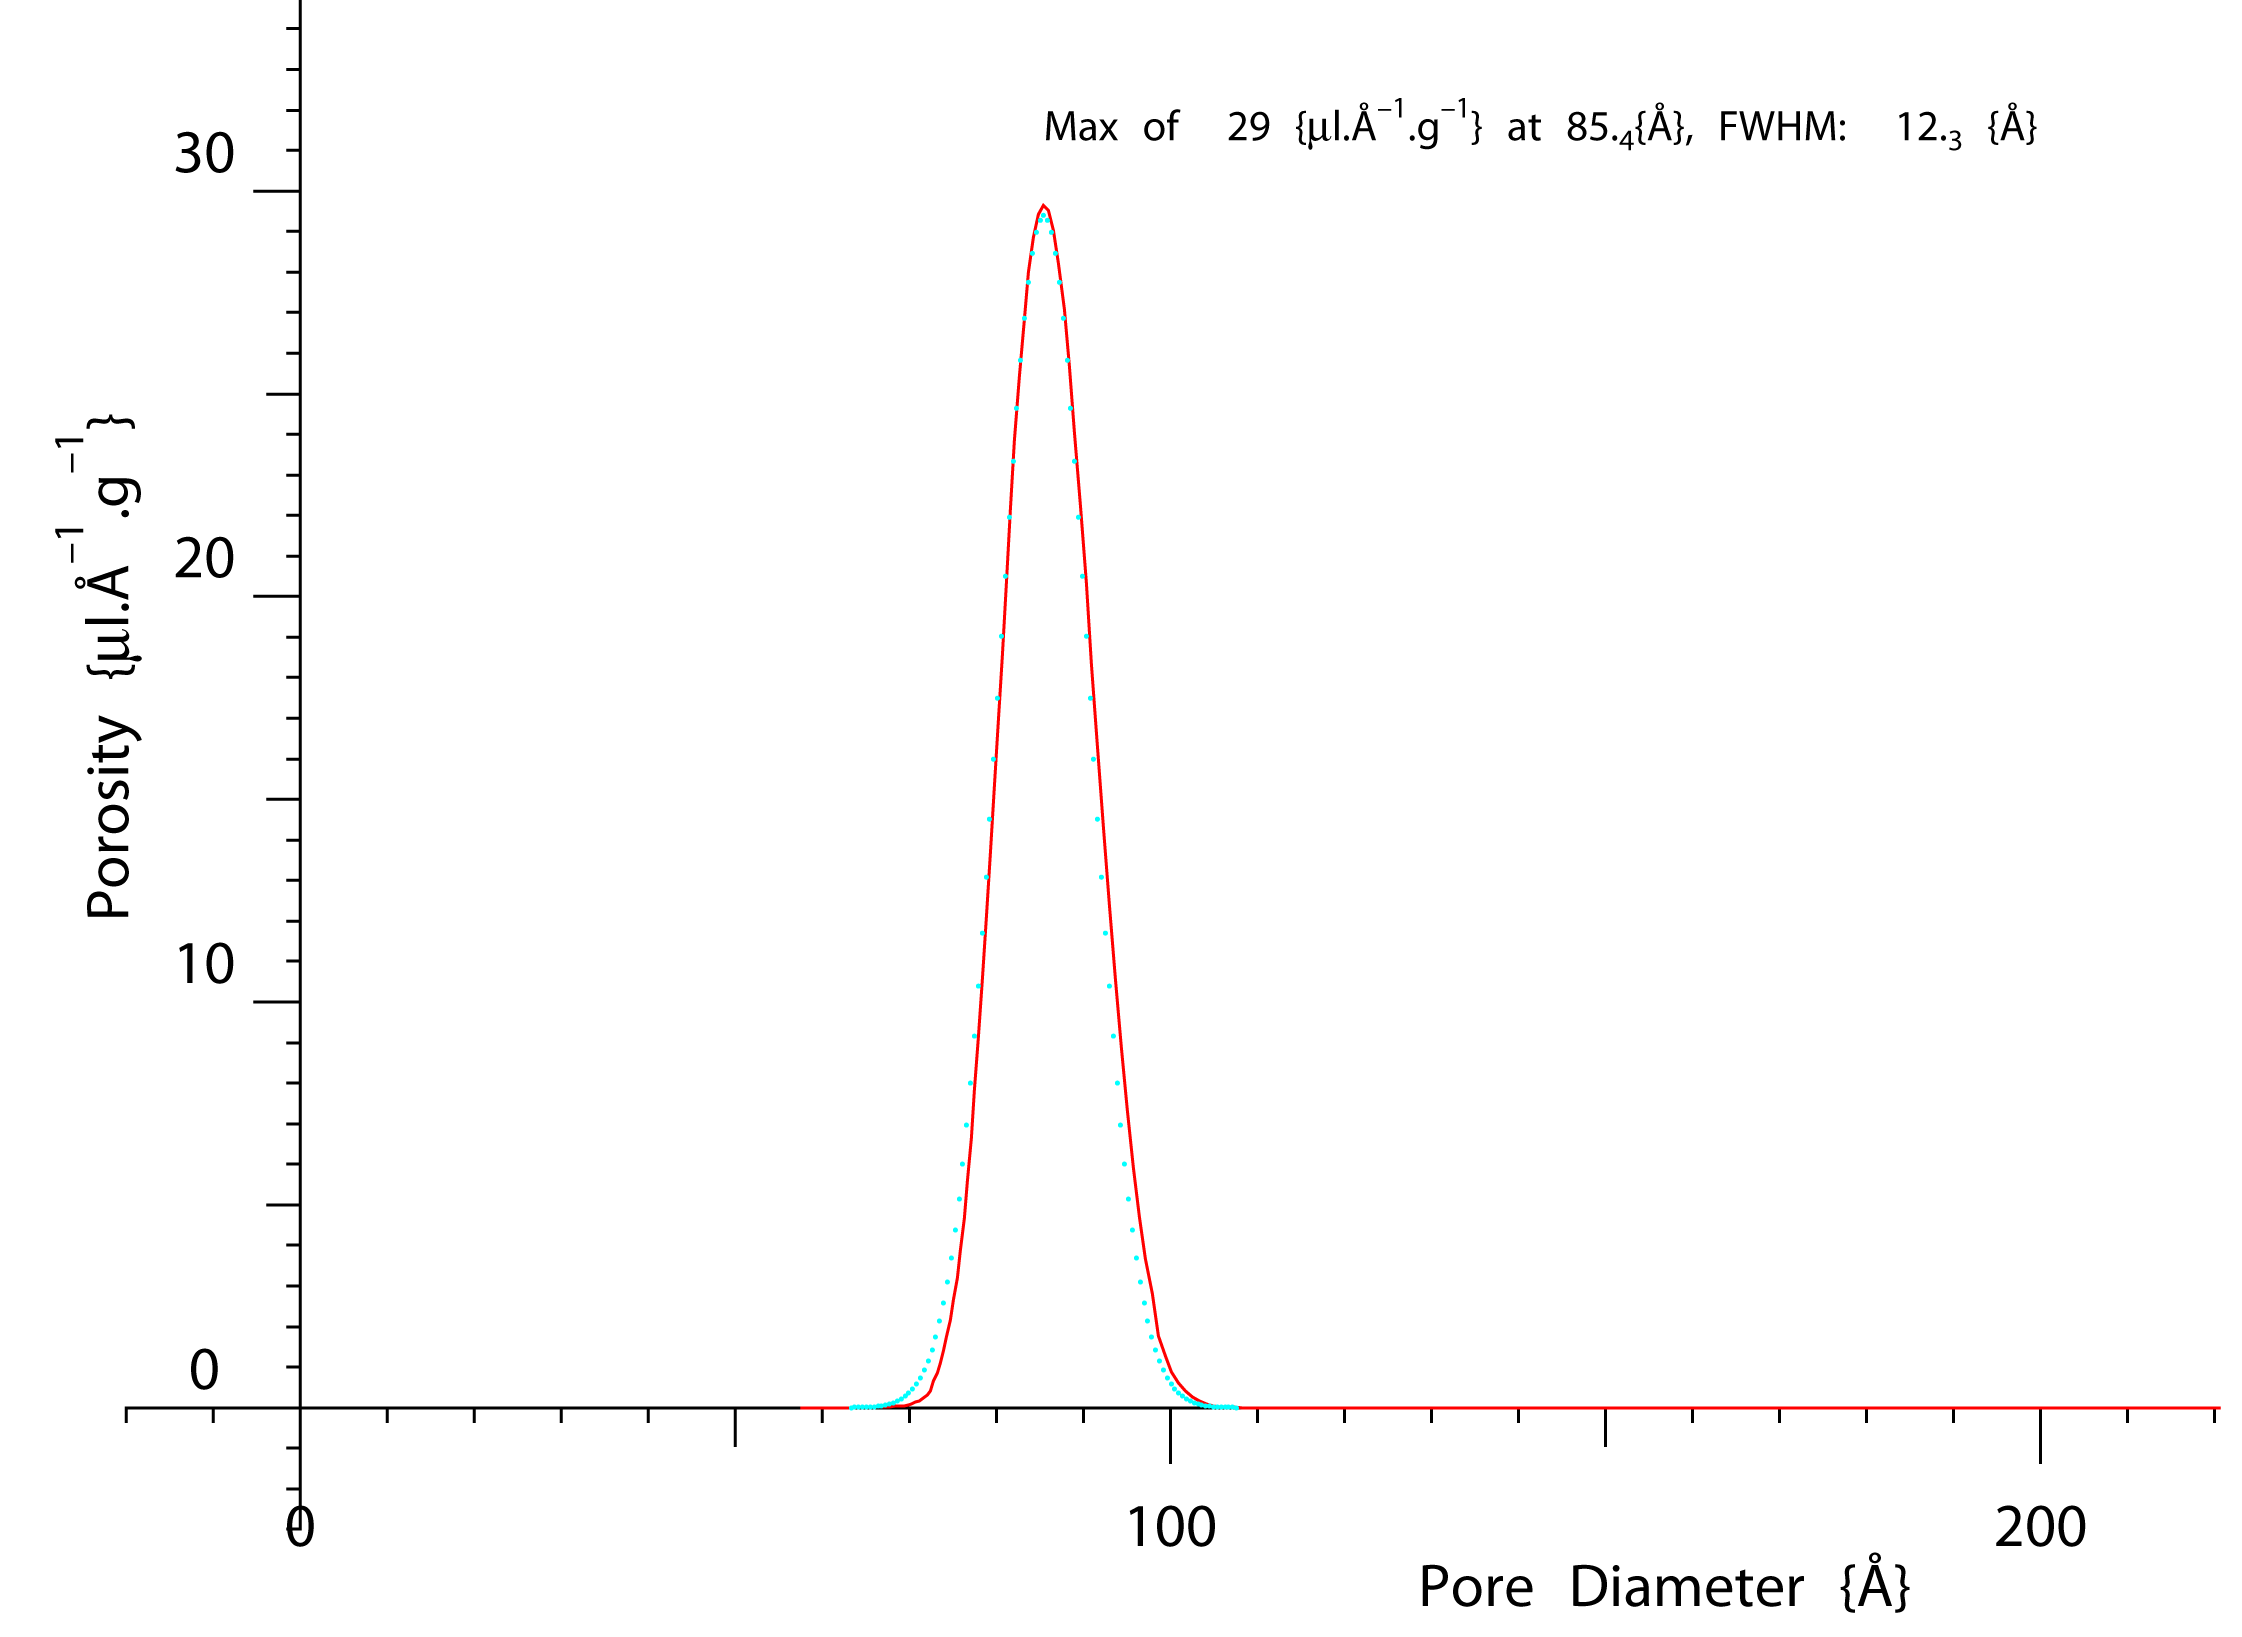 NMR poresize